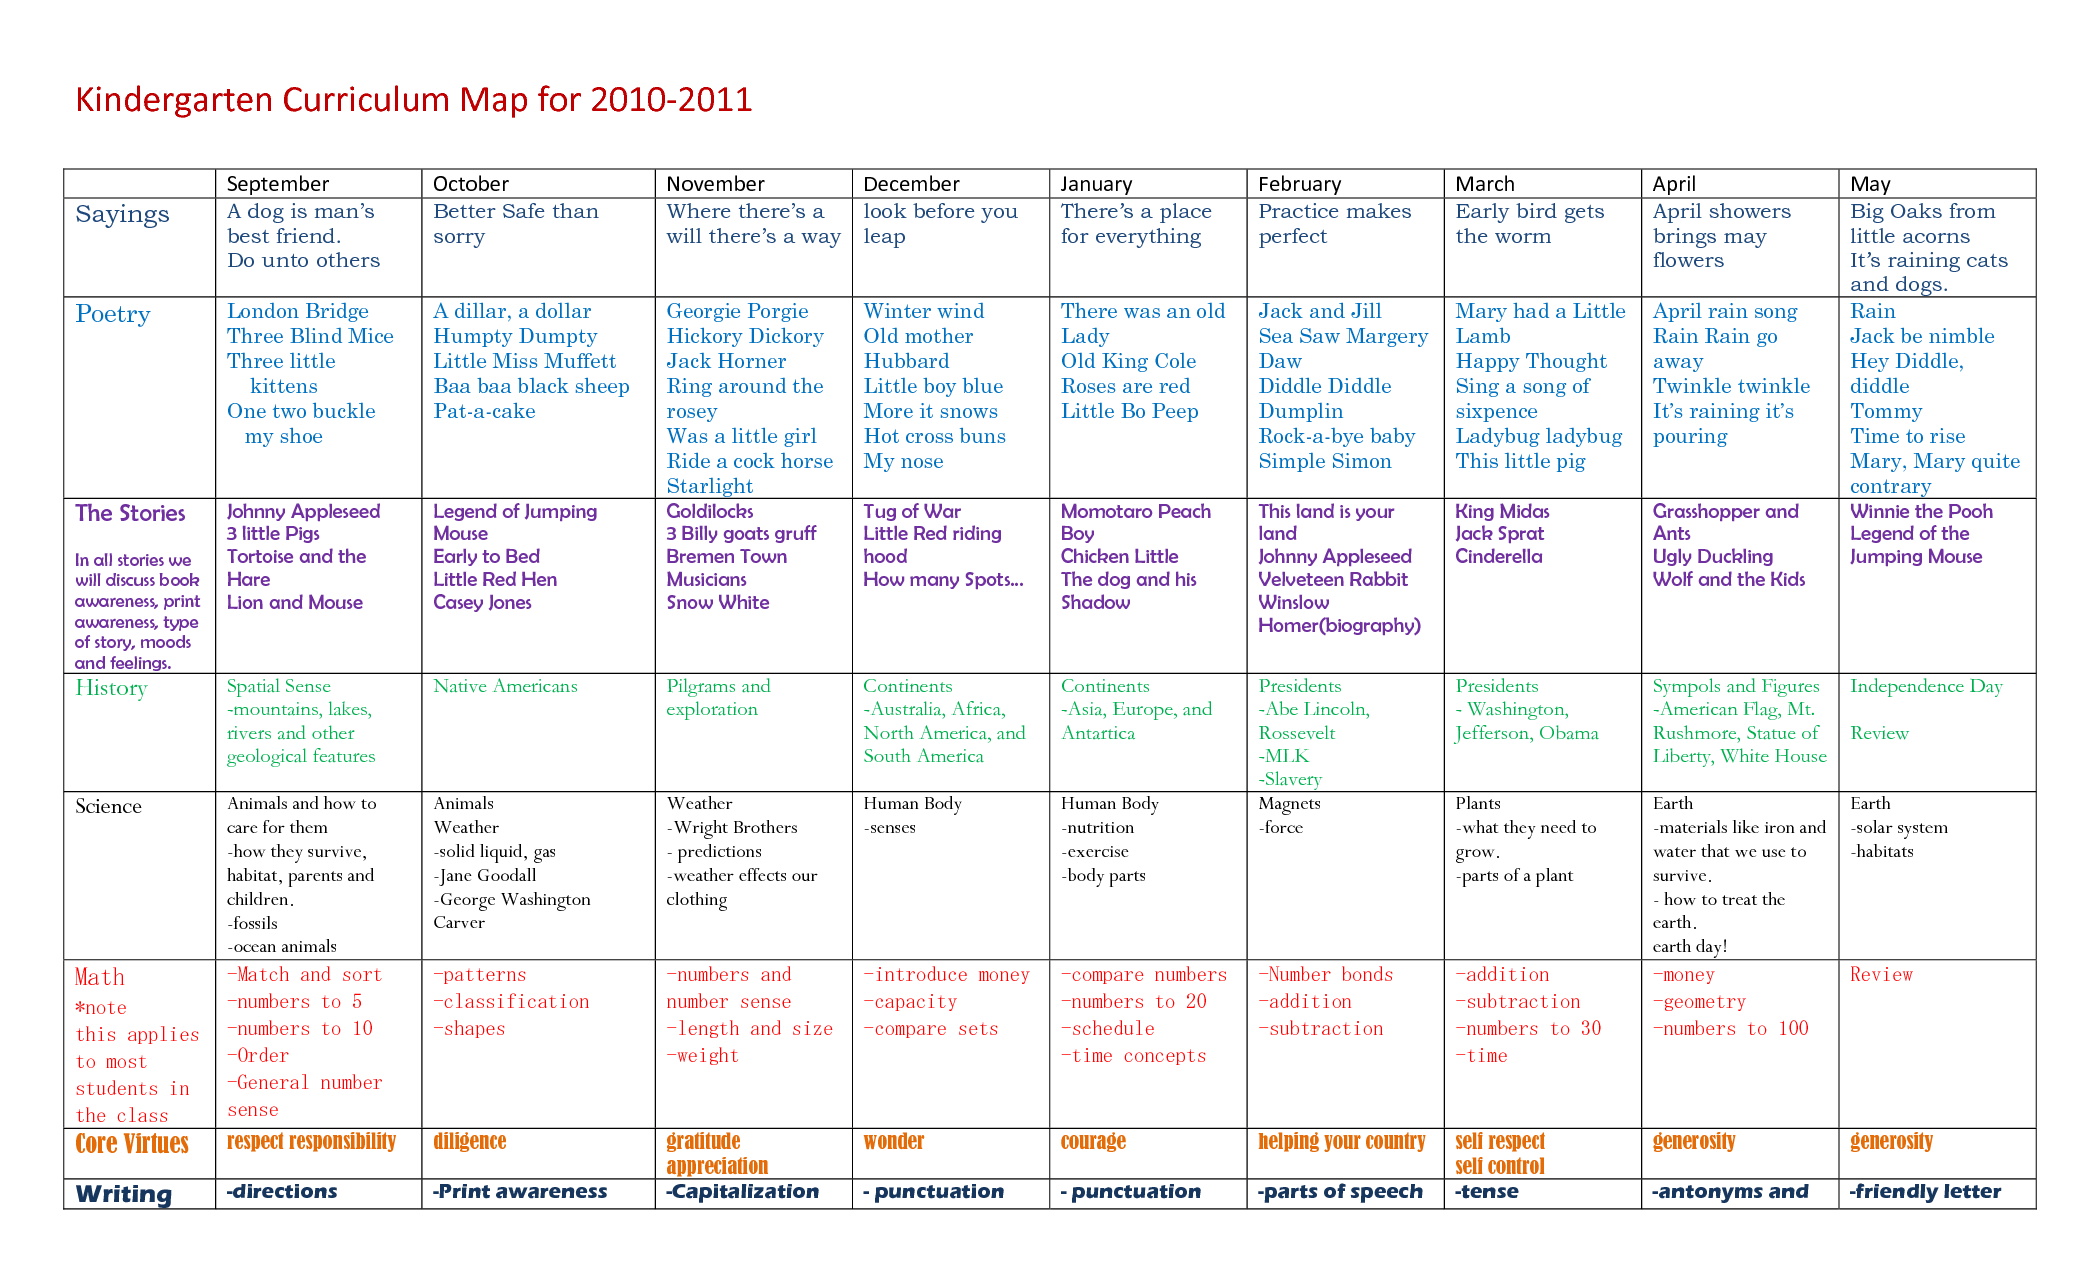 Kindergarten curriculum kindergarten curriculum map for for Preschool curriculum map template